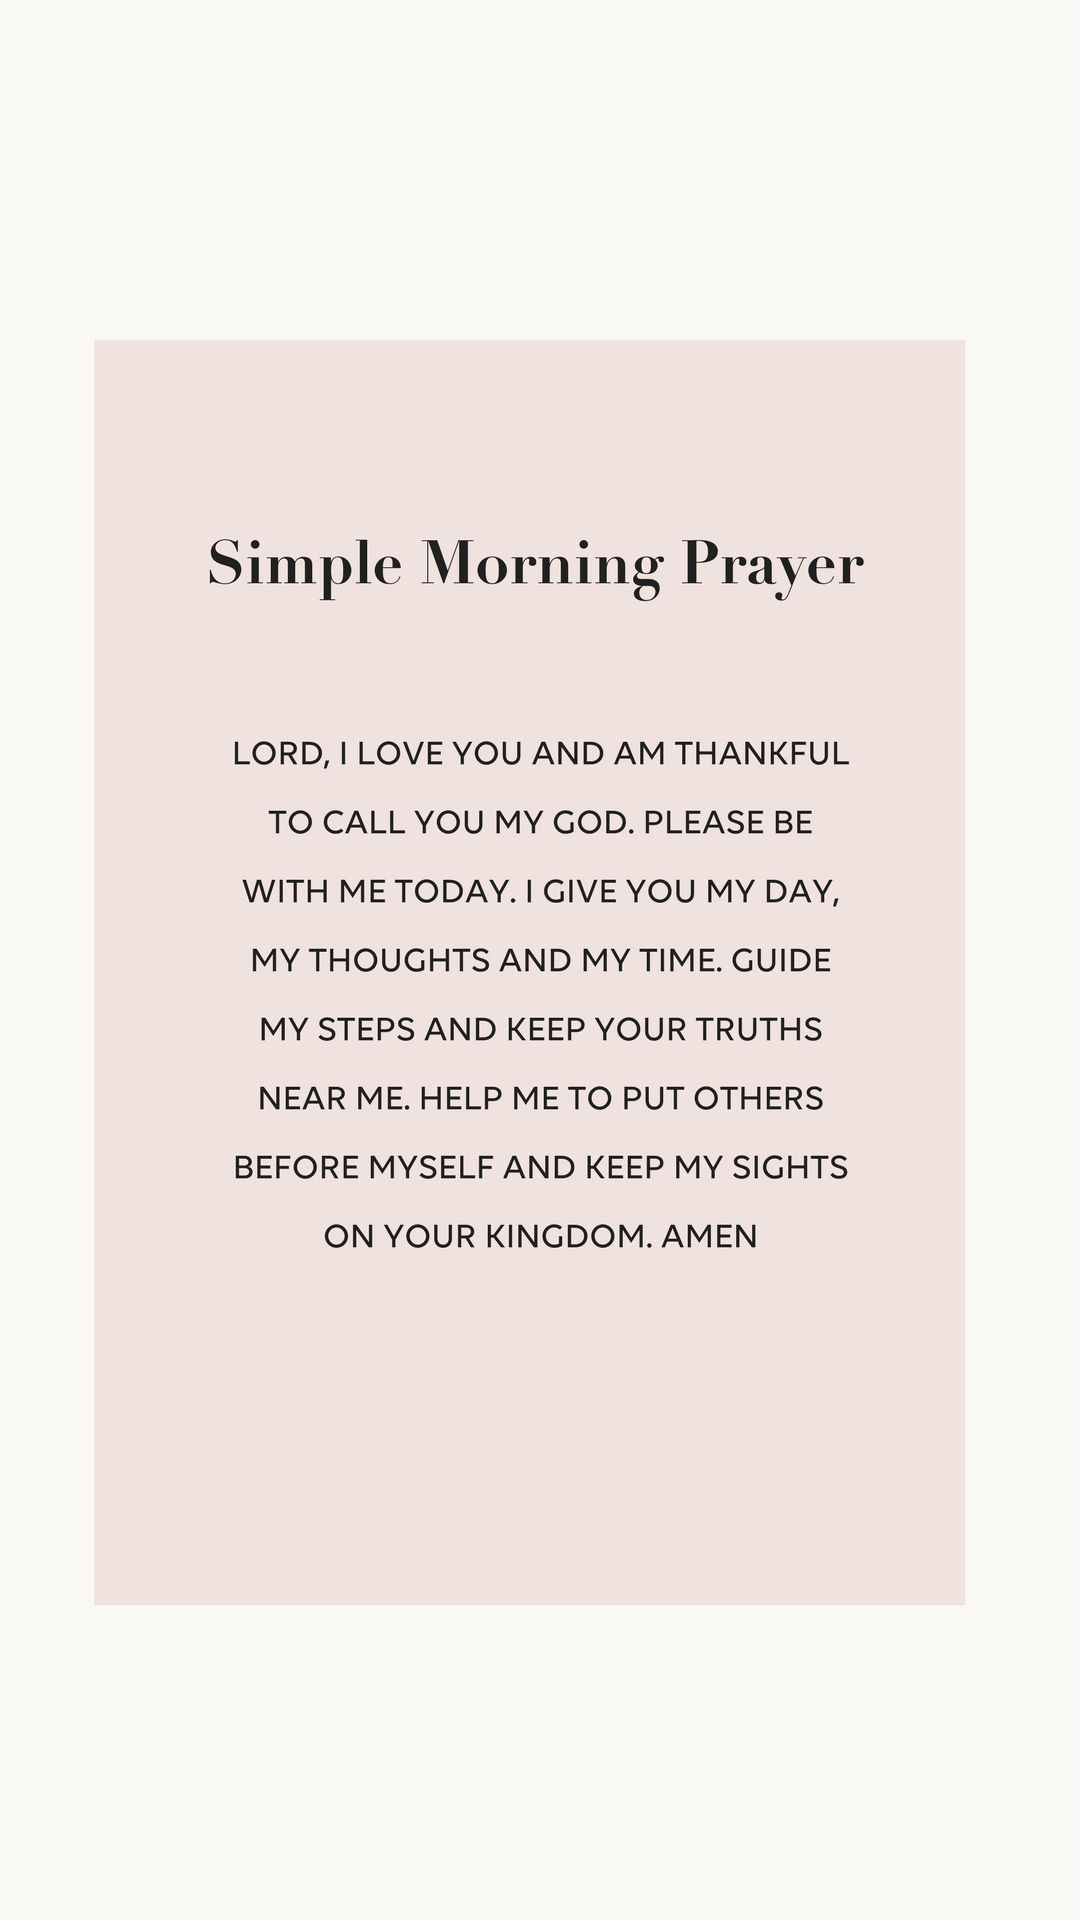 simple morning prayer  u2022 brightontheday